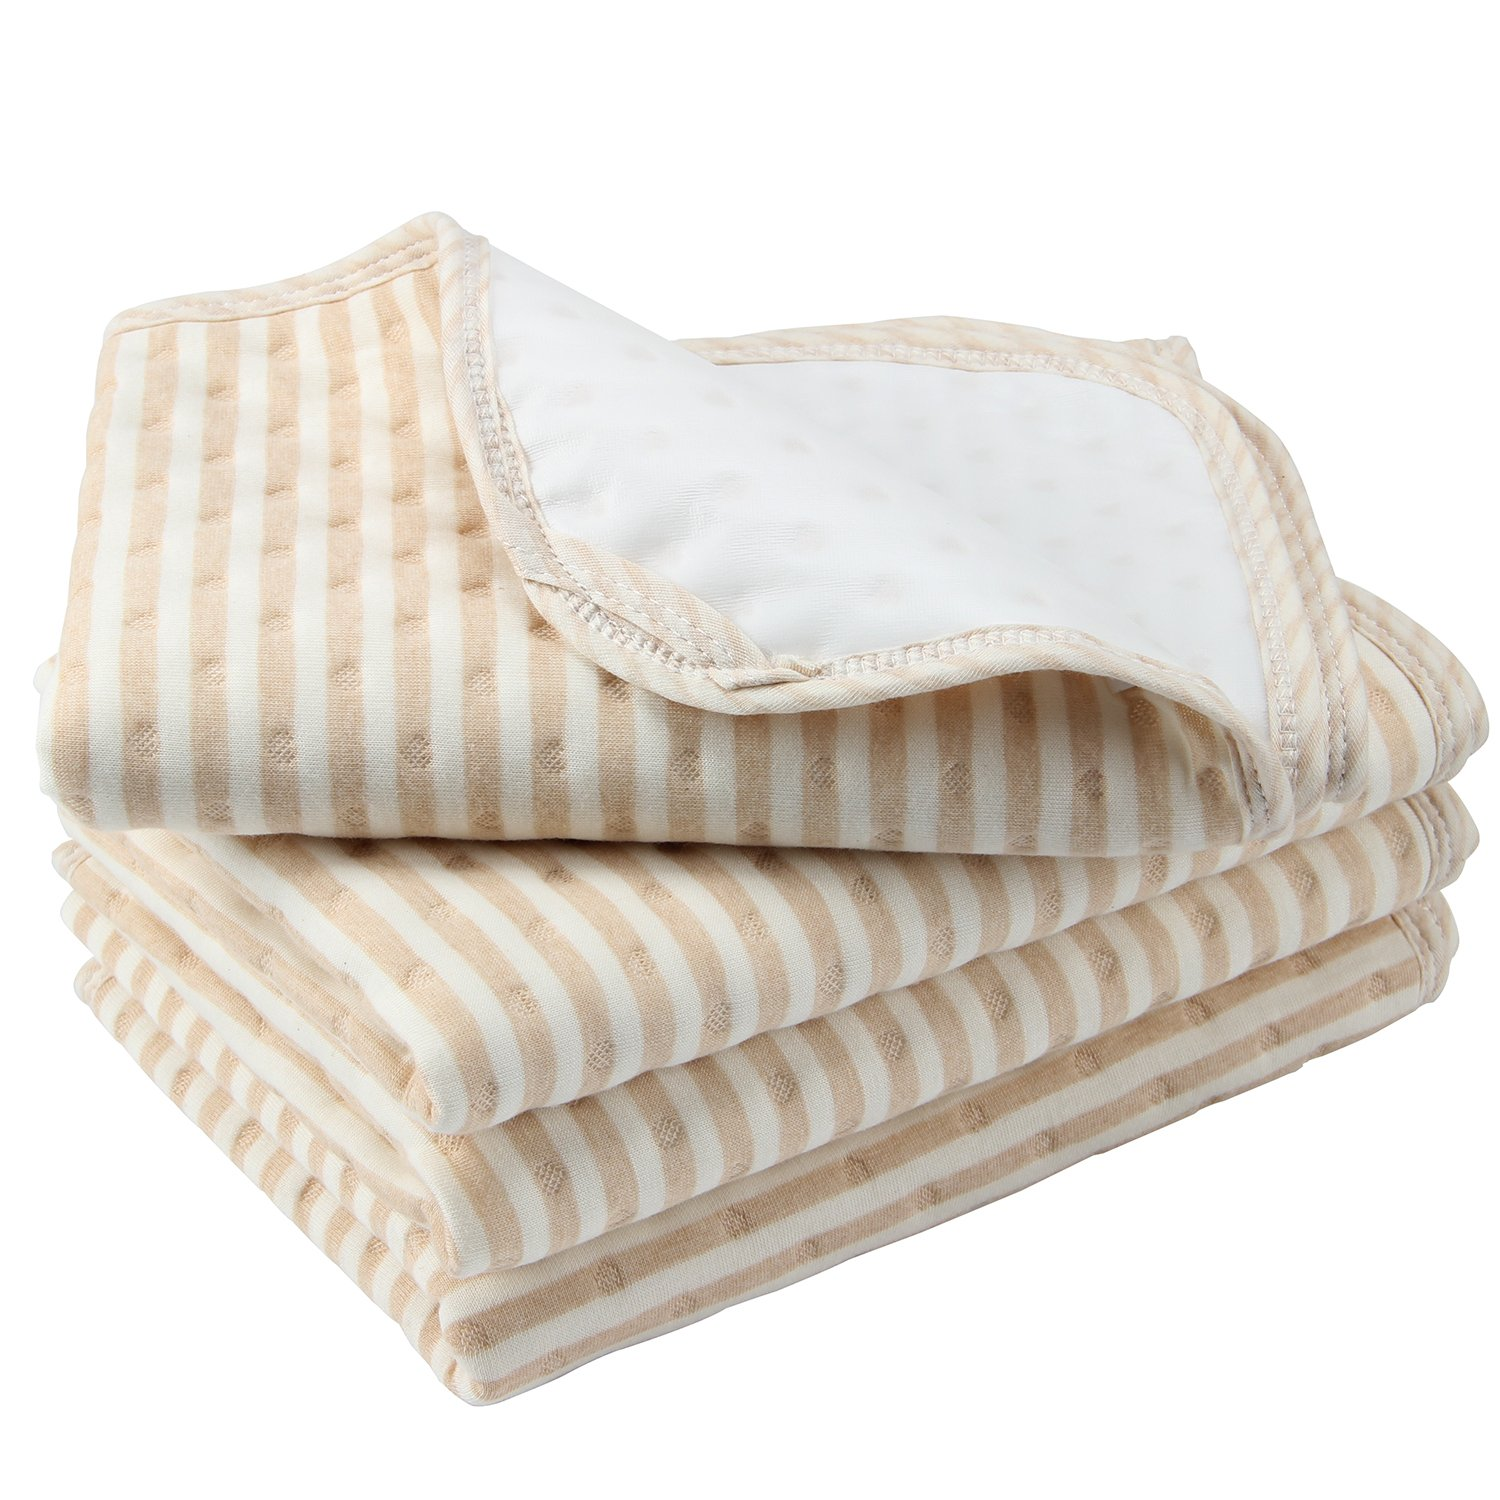 Biubee 4 Packs Waterproof Changing Pad Liners - 27.5'' X 19.7'', Wider and Longer to Cover your Changing Table Mattress Pad for babies or Adults